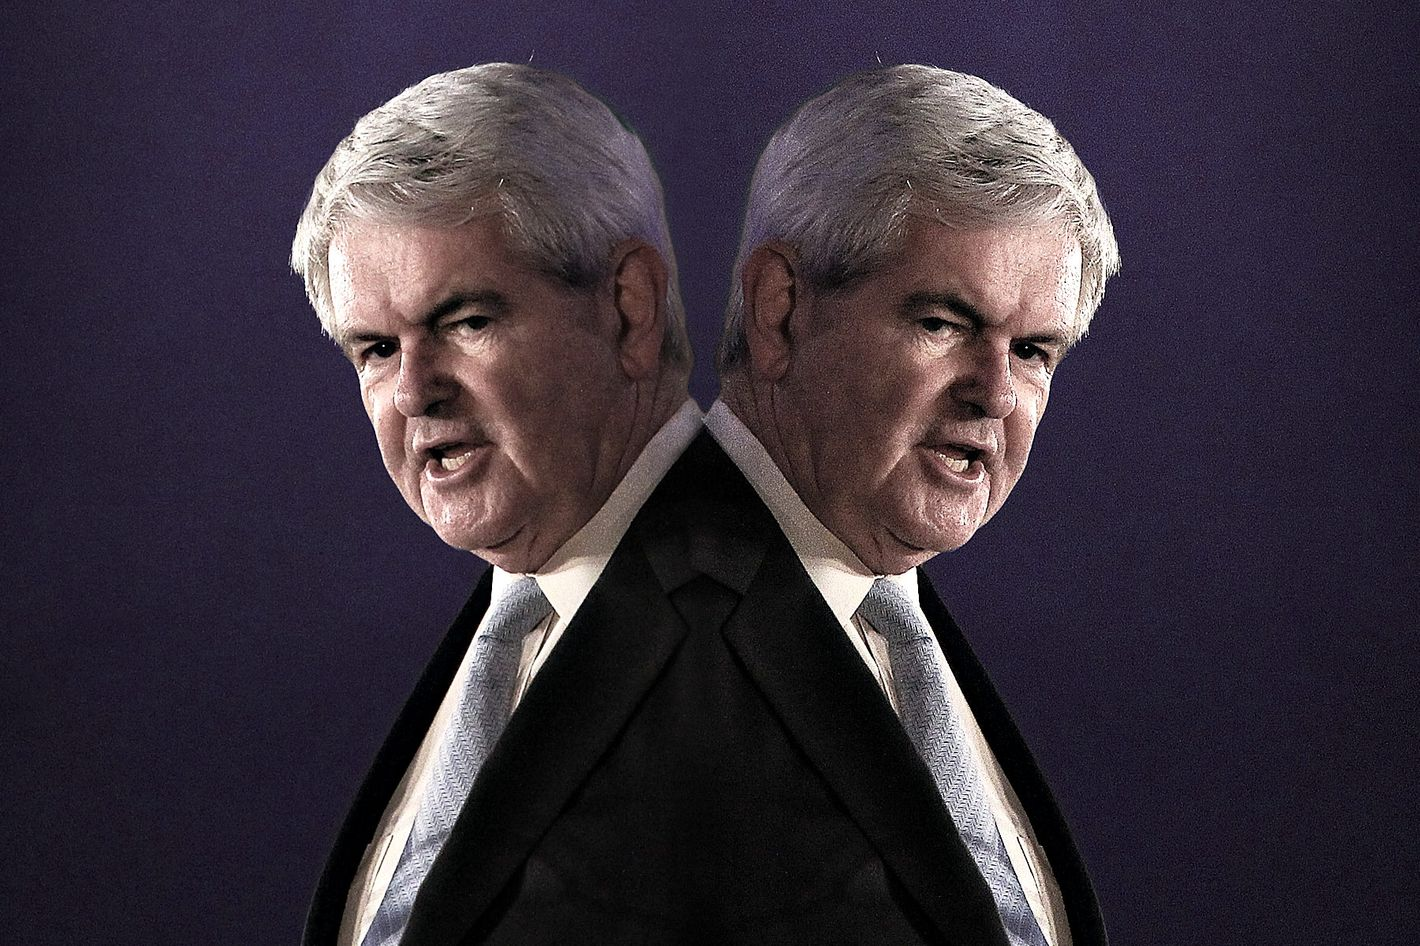 Gingrich Addresses Support for Marriage Equality